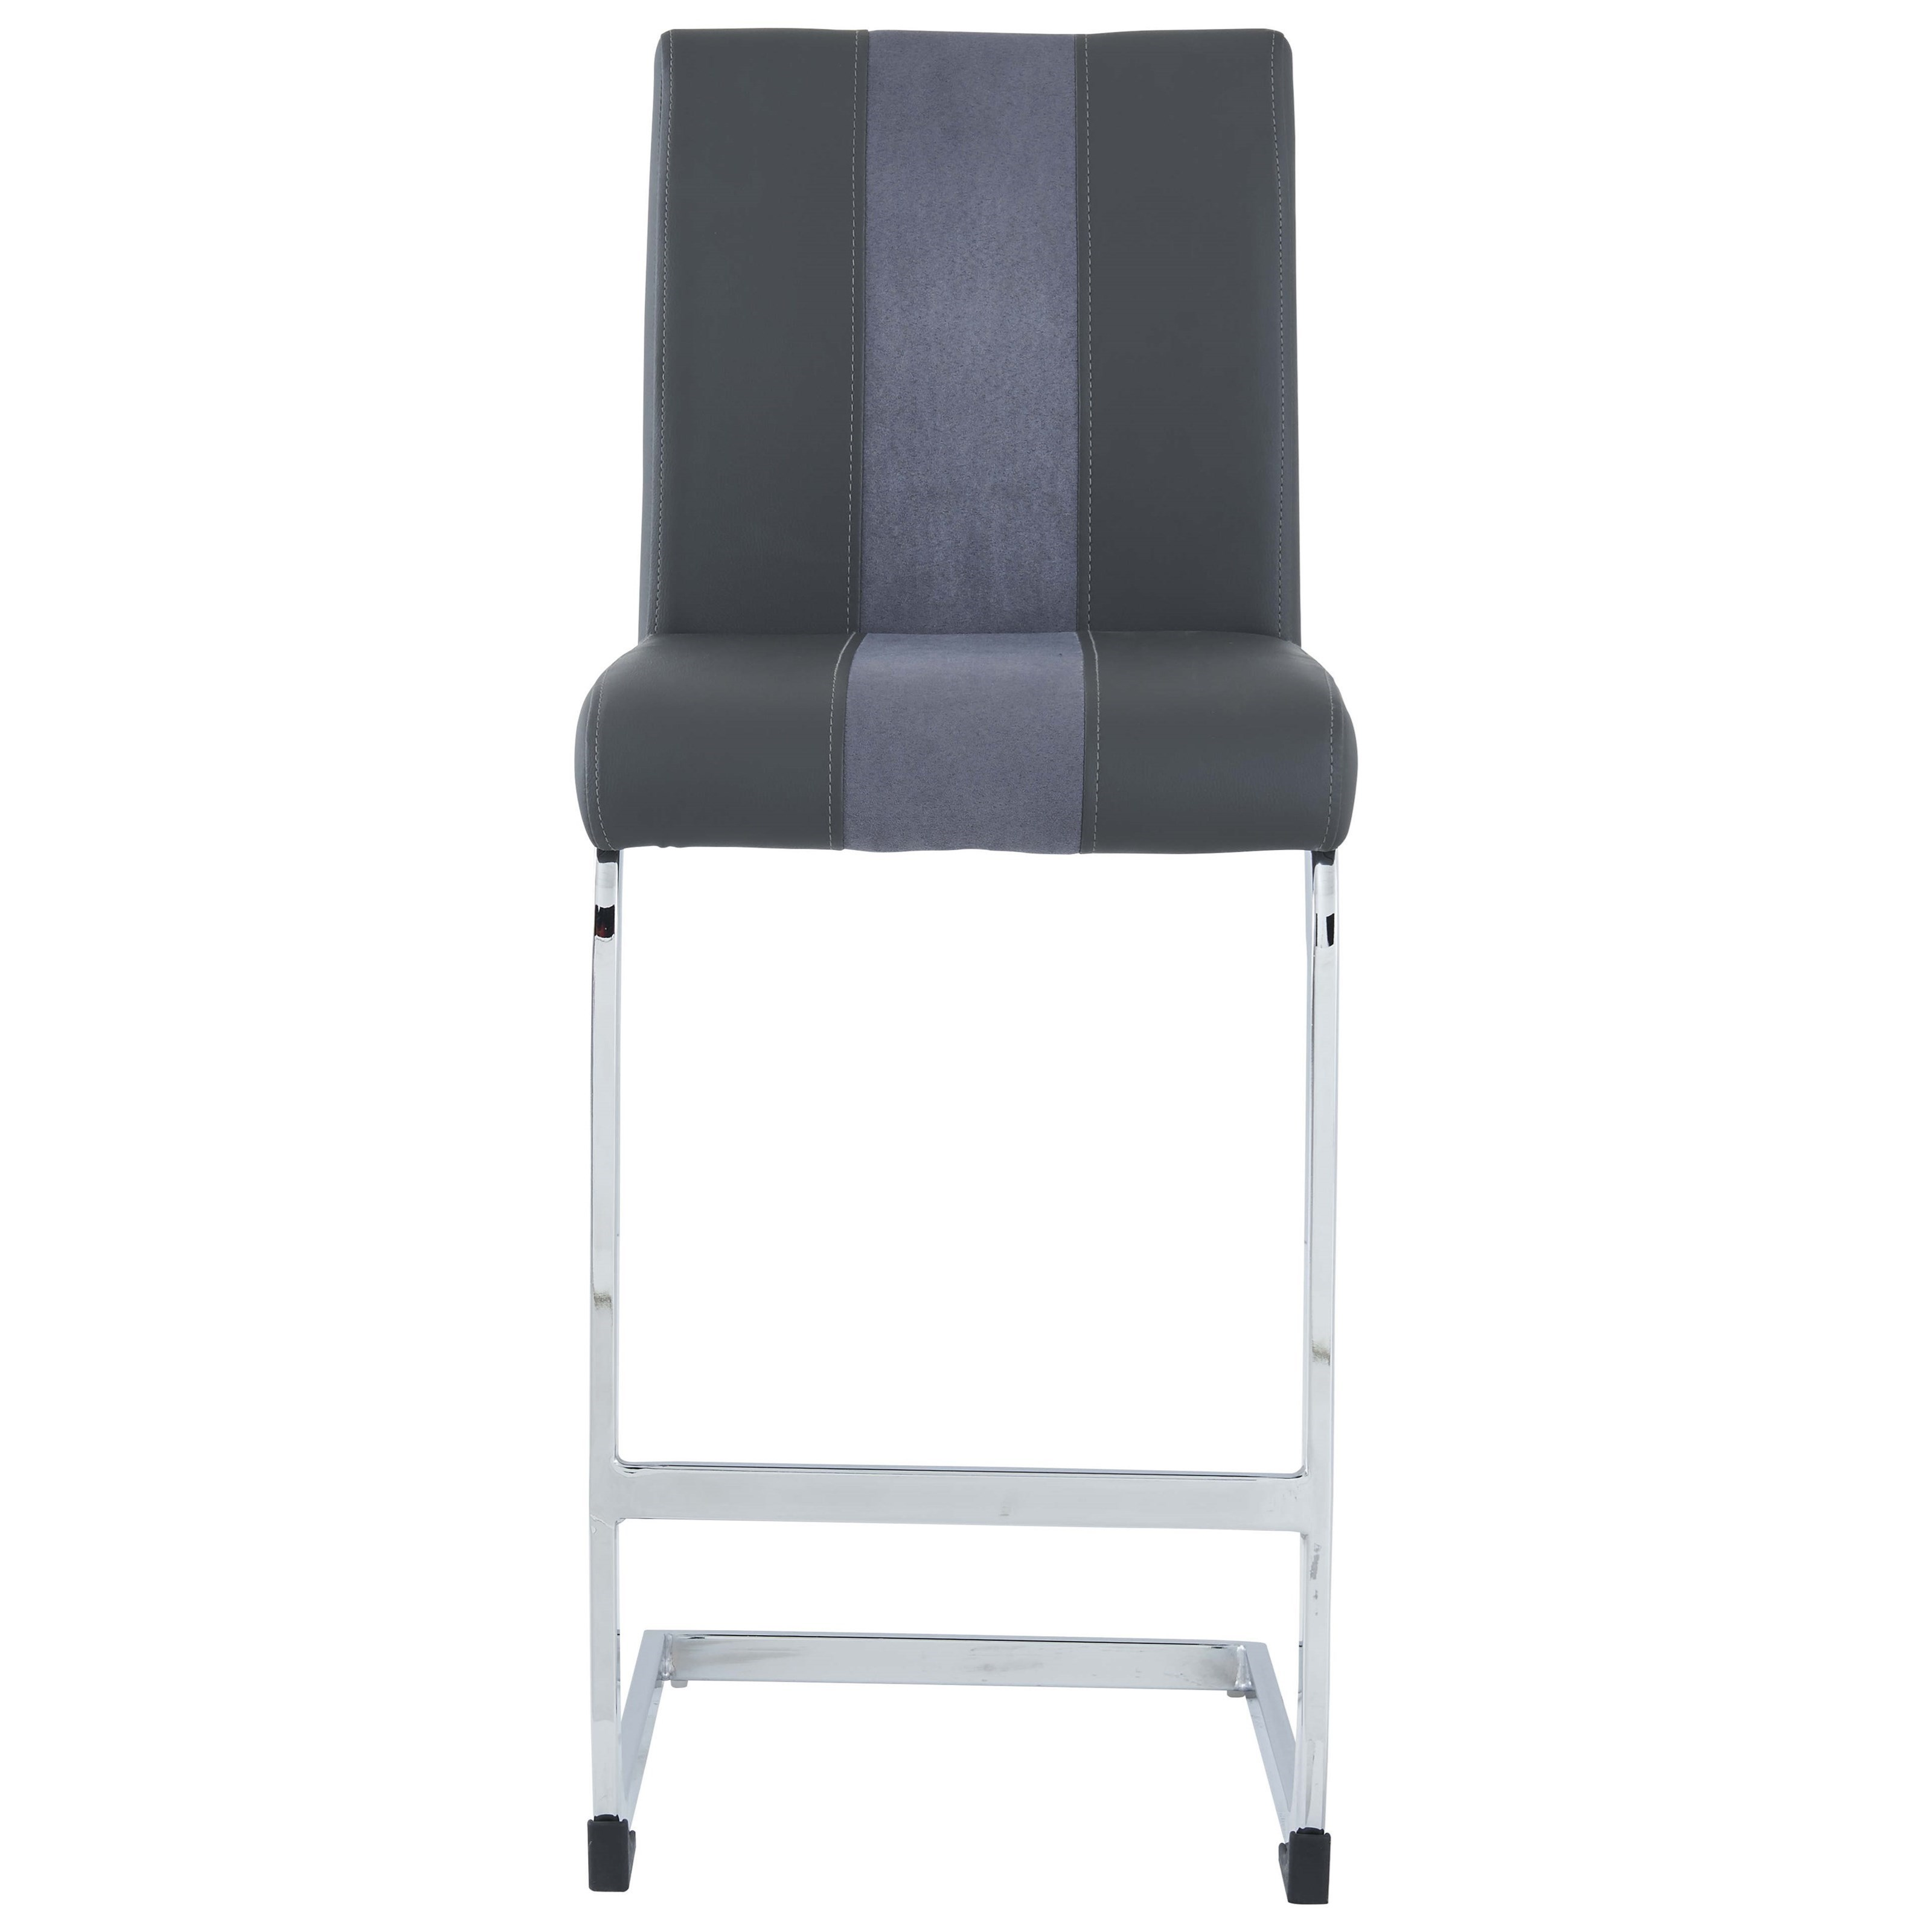 Dining Bench Long Seat Chairs Faux PU Leather Lounge Stool Base Steel Home